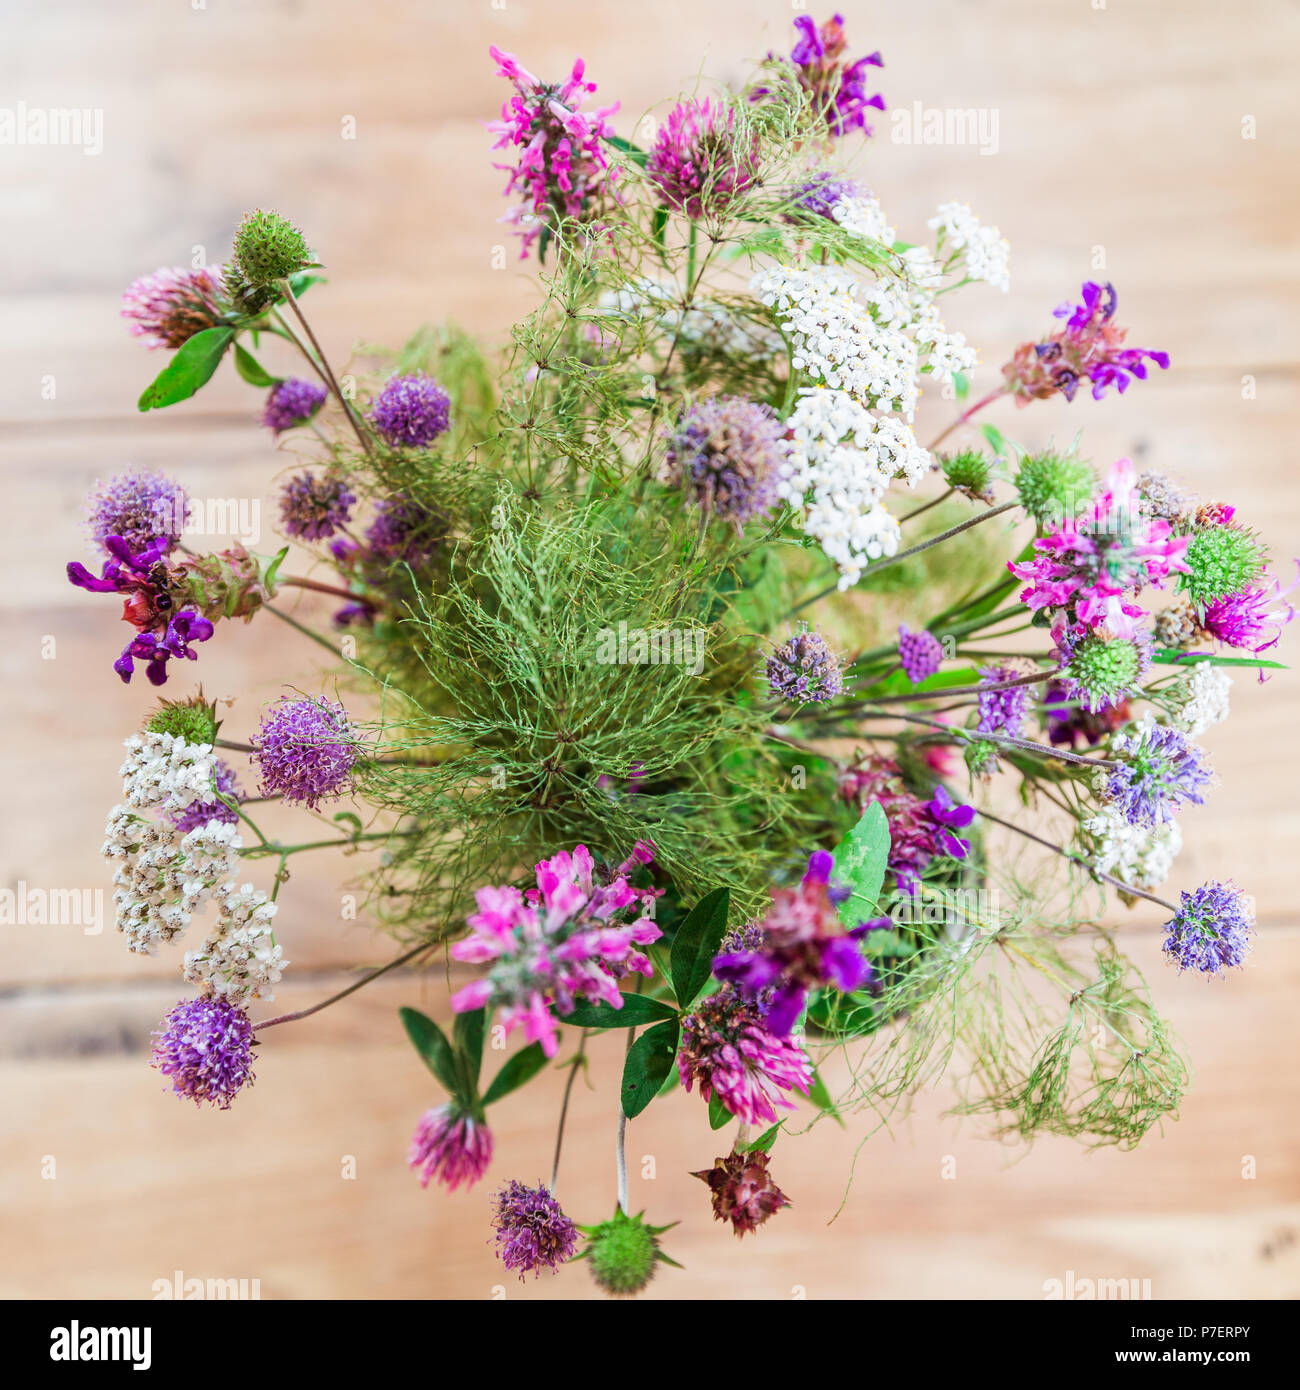 Home made fresh wild flowers bouquet on wooden table stock photo home made fresh wild flowers bouquet on wooden table izmirmasajfo